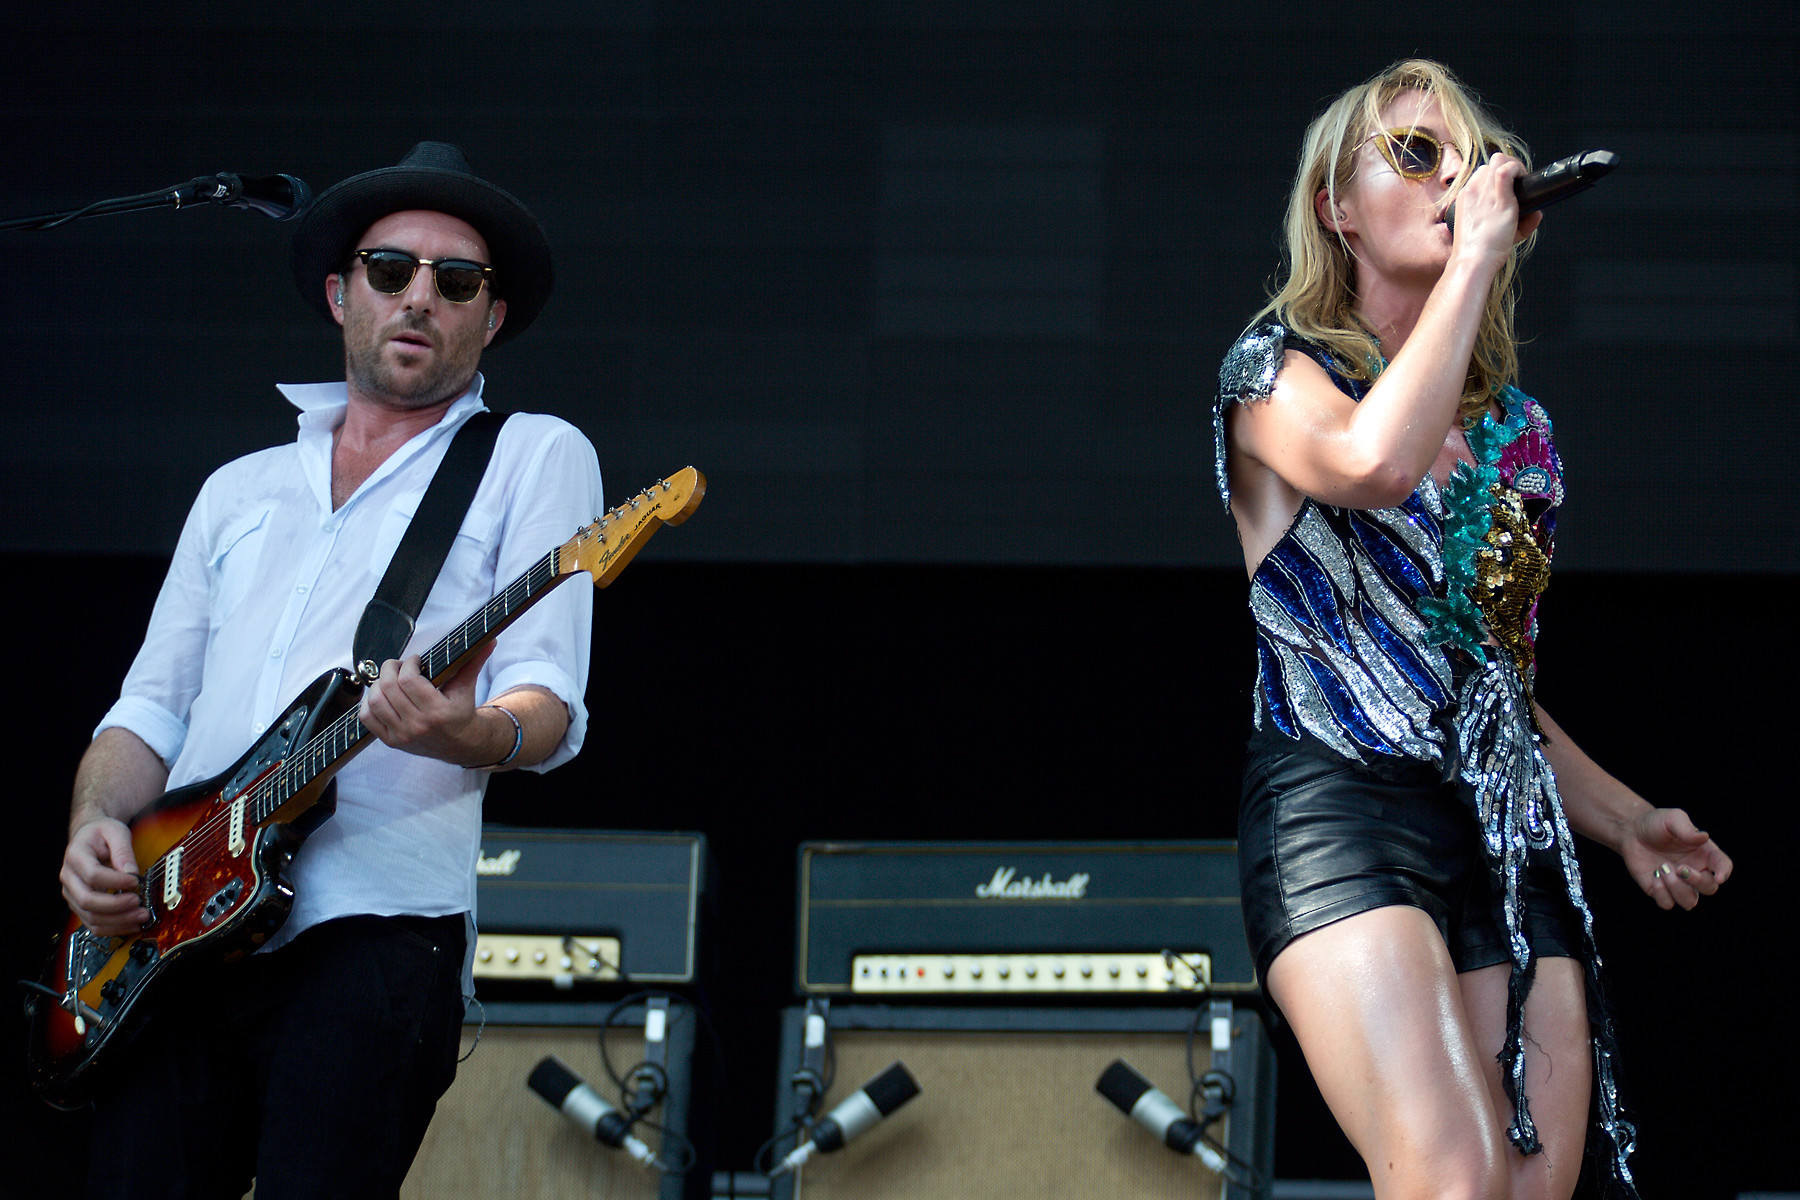 Metric @ Lollapalooza 2012